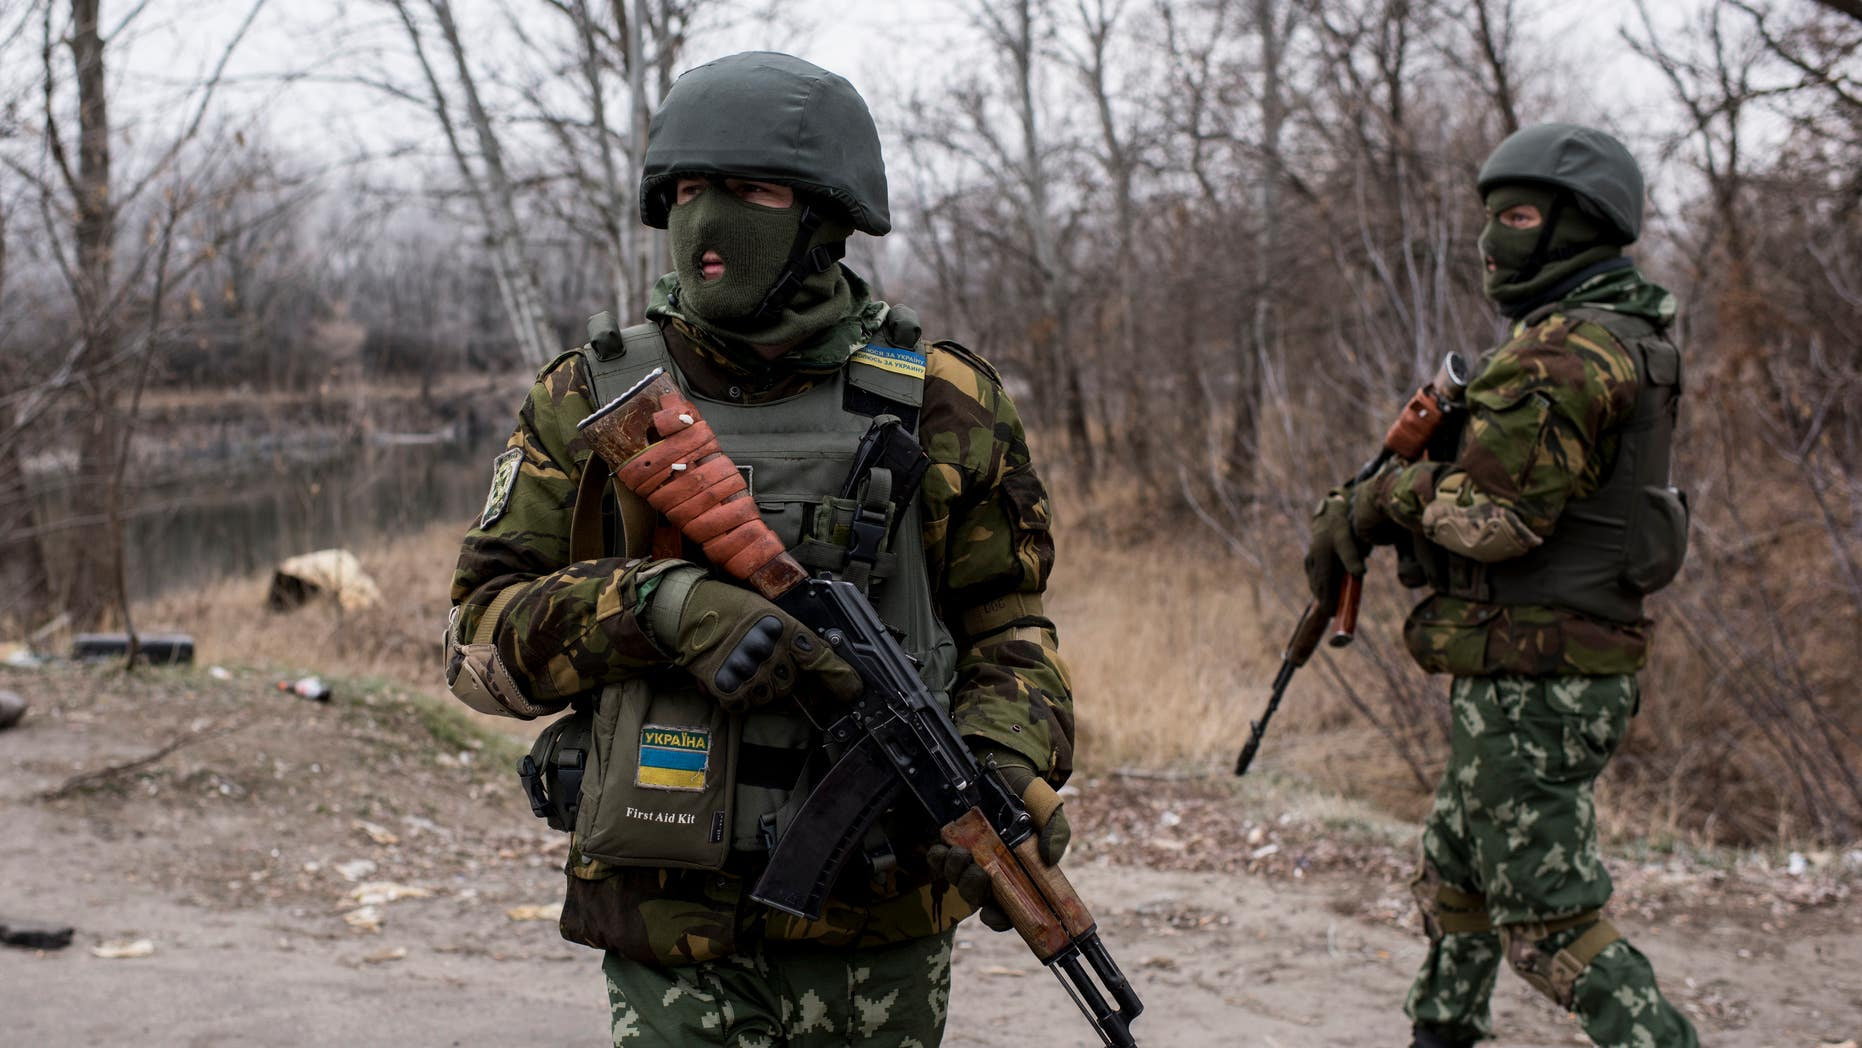 Nov 23, 2014 - FILE photo of Ukrainian servicemen near a bridge over the river Siverskiy Donets, damaged by explosion during fighting between Pro-Russian rebels and Ukrainian government forces near Trehizbenka village, Luhansk region eastern Ukraine. More than 4,700 people have died in fighting in eastern Ukraine over the past half year, according to UN estimates. (AP)